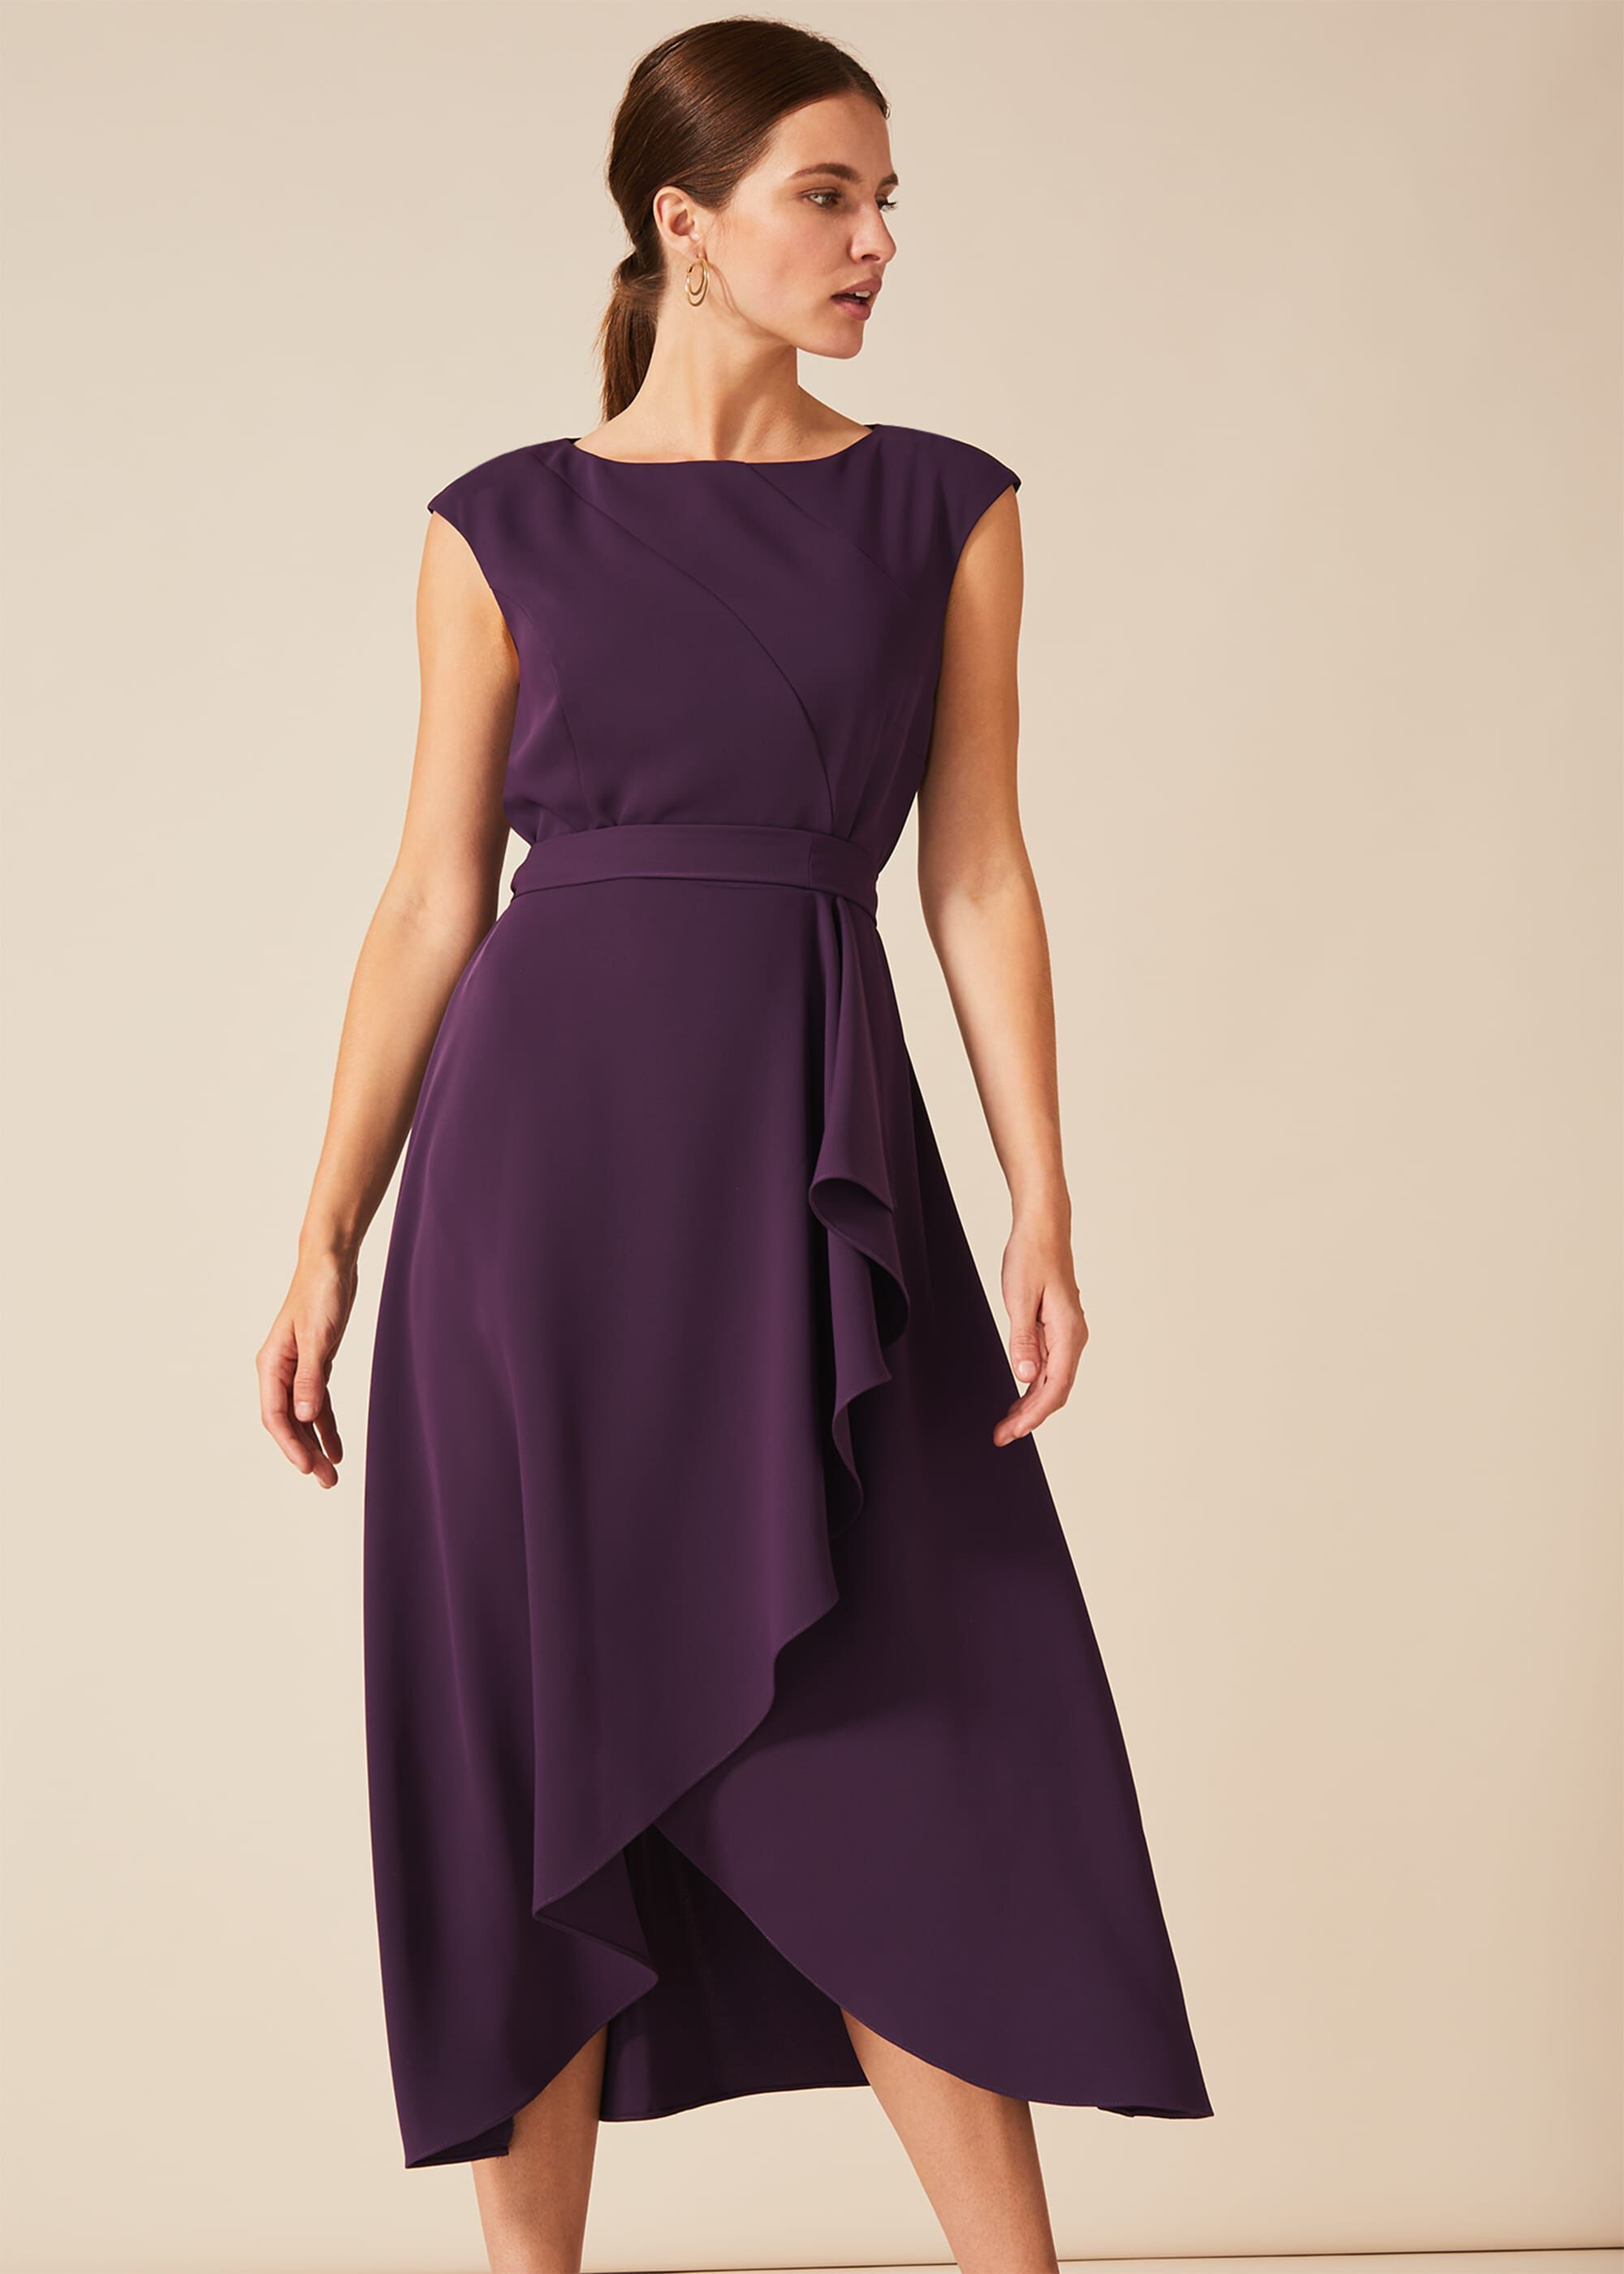 Phase Eight Rushelle Dress, Purple, Fit & Flare, Occasion Dress